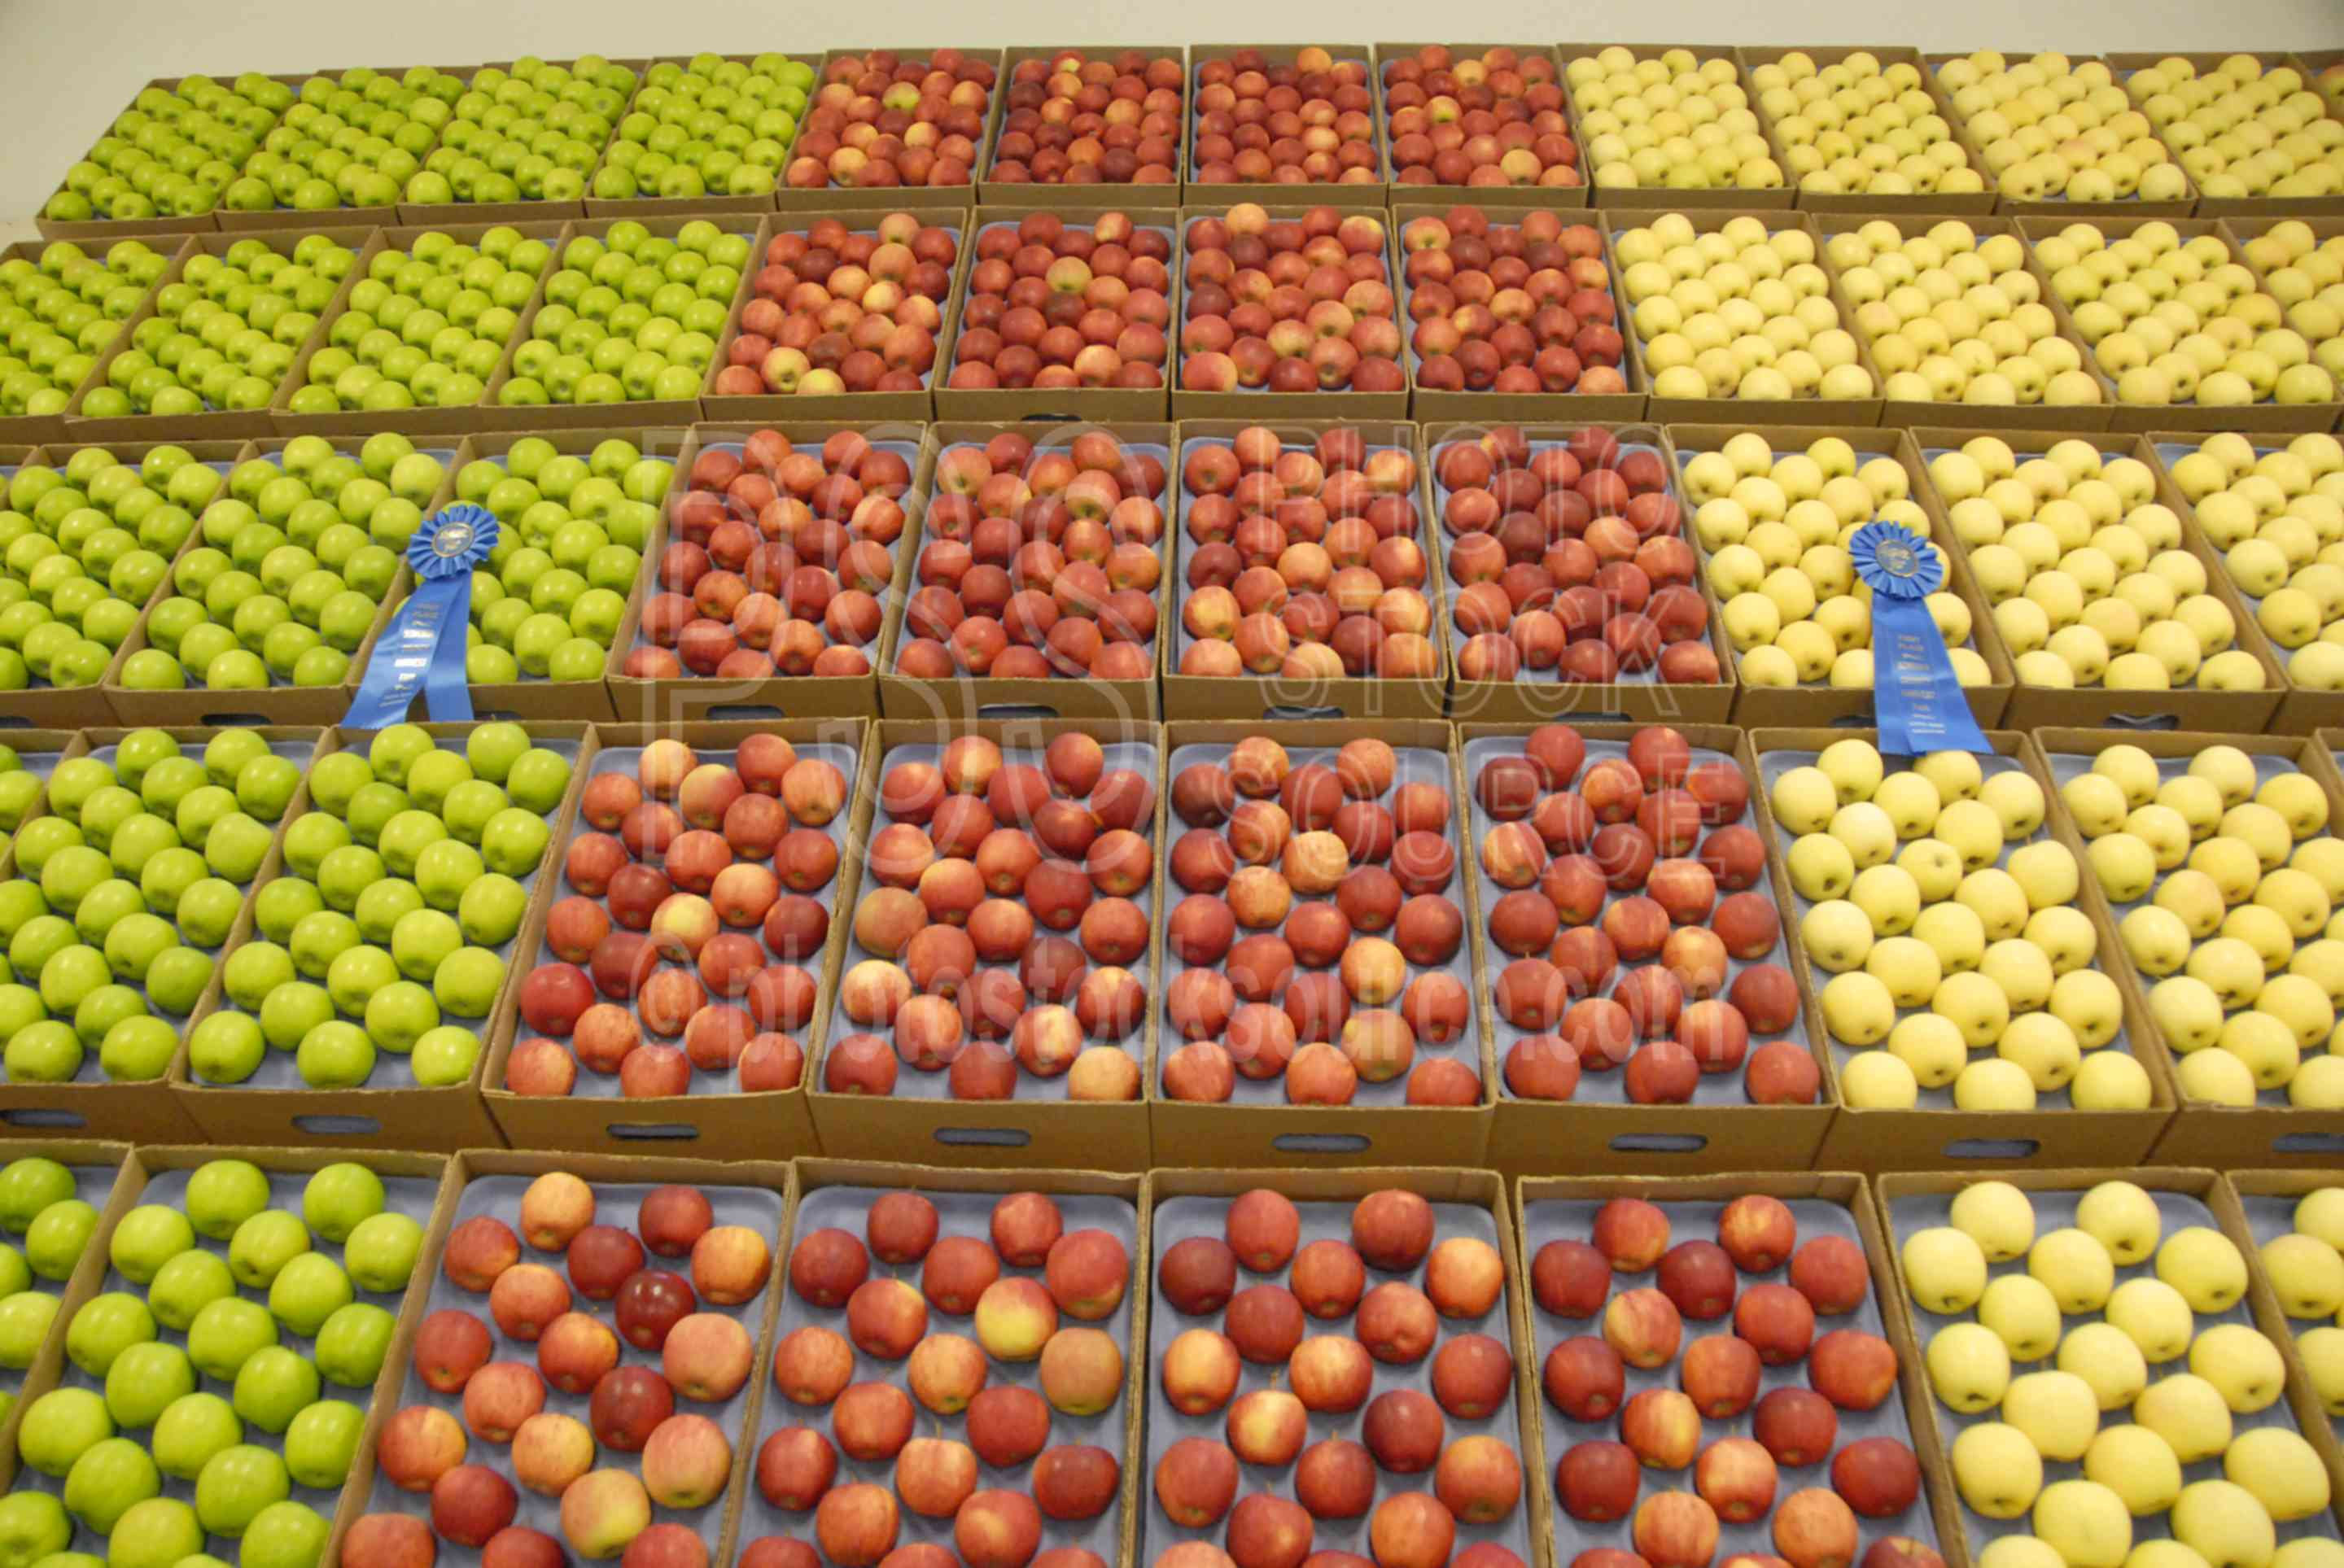 Apple Display,fair,festival,apples,contest,fruit,food,produce,cases,gala,granny smith,golden delicious,agriculture